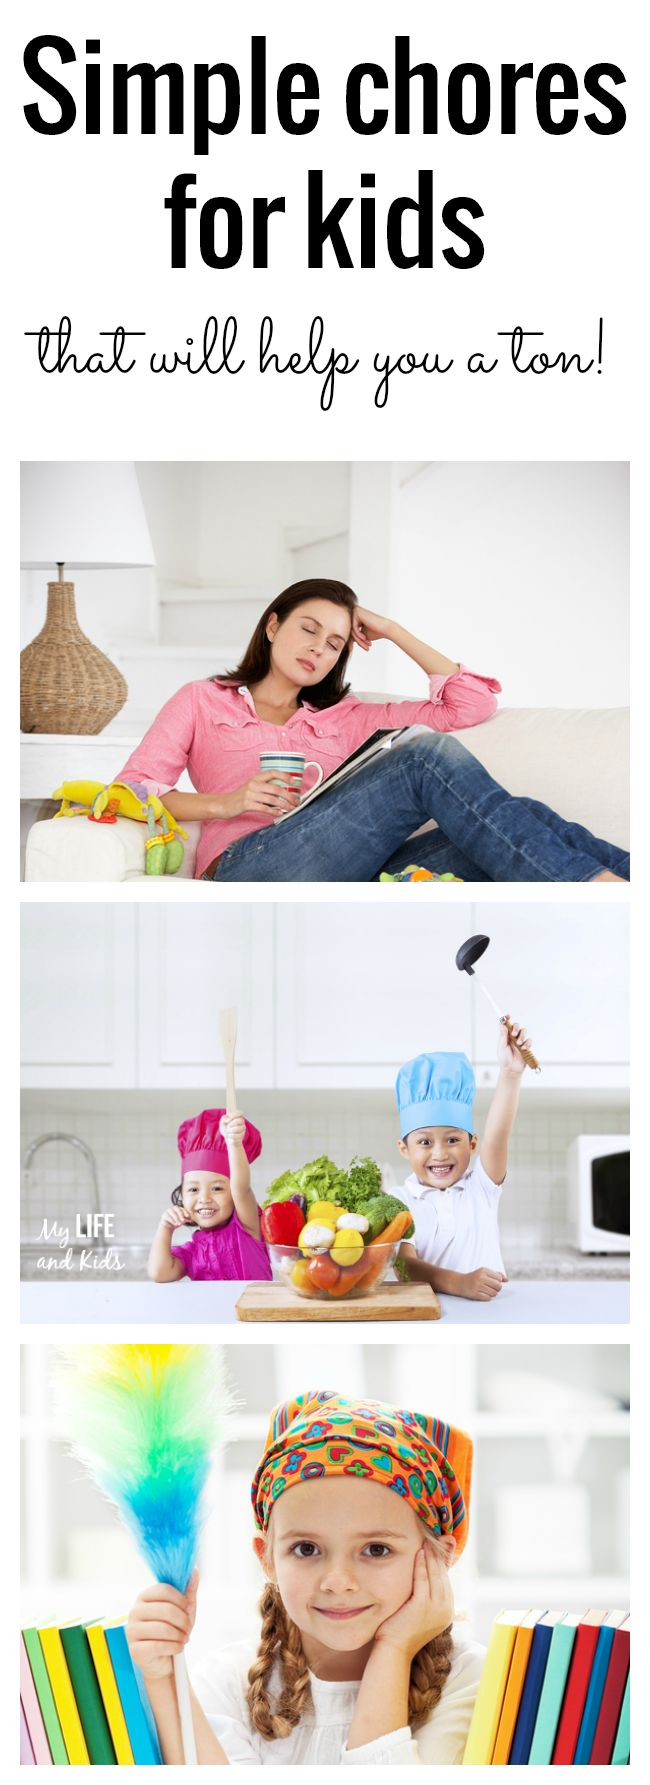 Need help? Five simple chores for kids that will actually help you a ton!